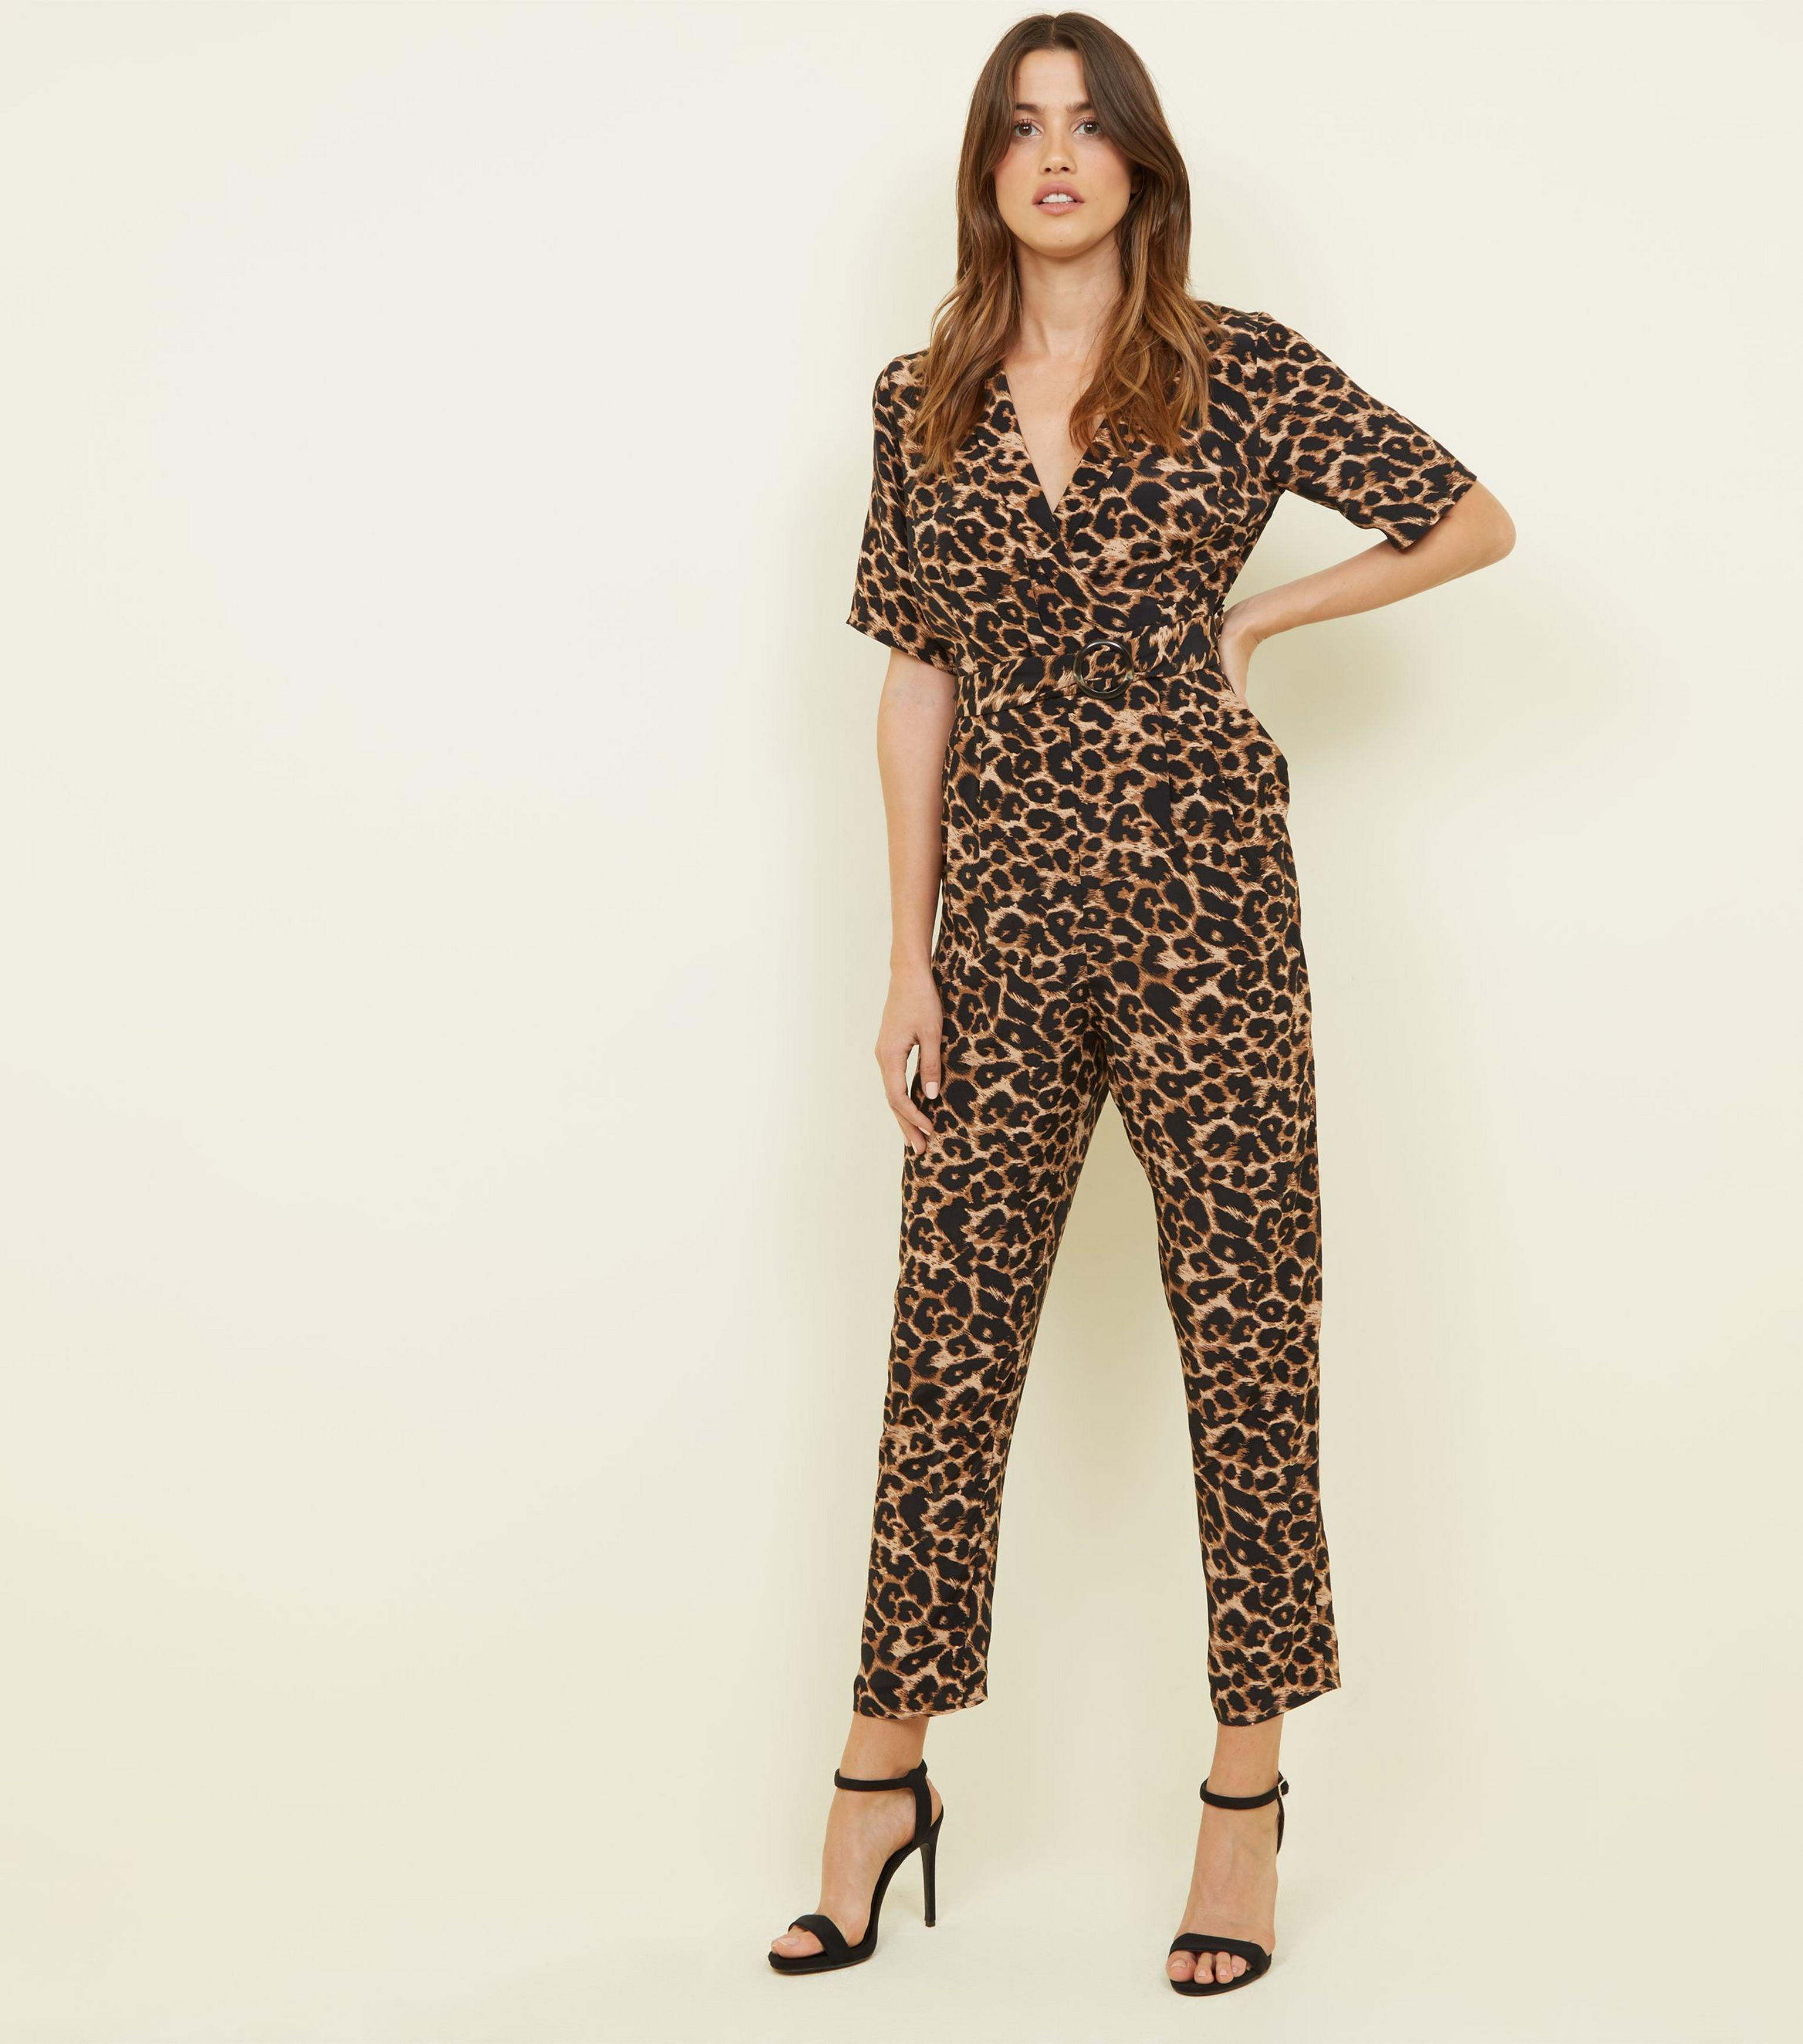 77965f9eb52 New Look Brown Leopard Print Revere Collar Wrap Jumpsuit in Brown - Lyst